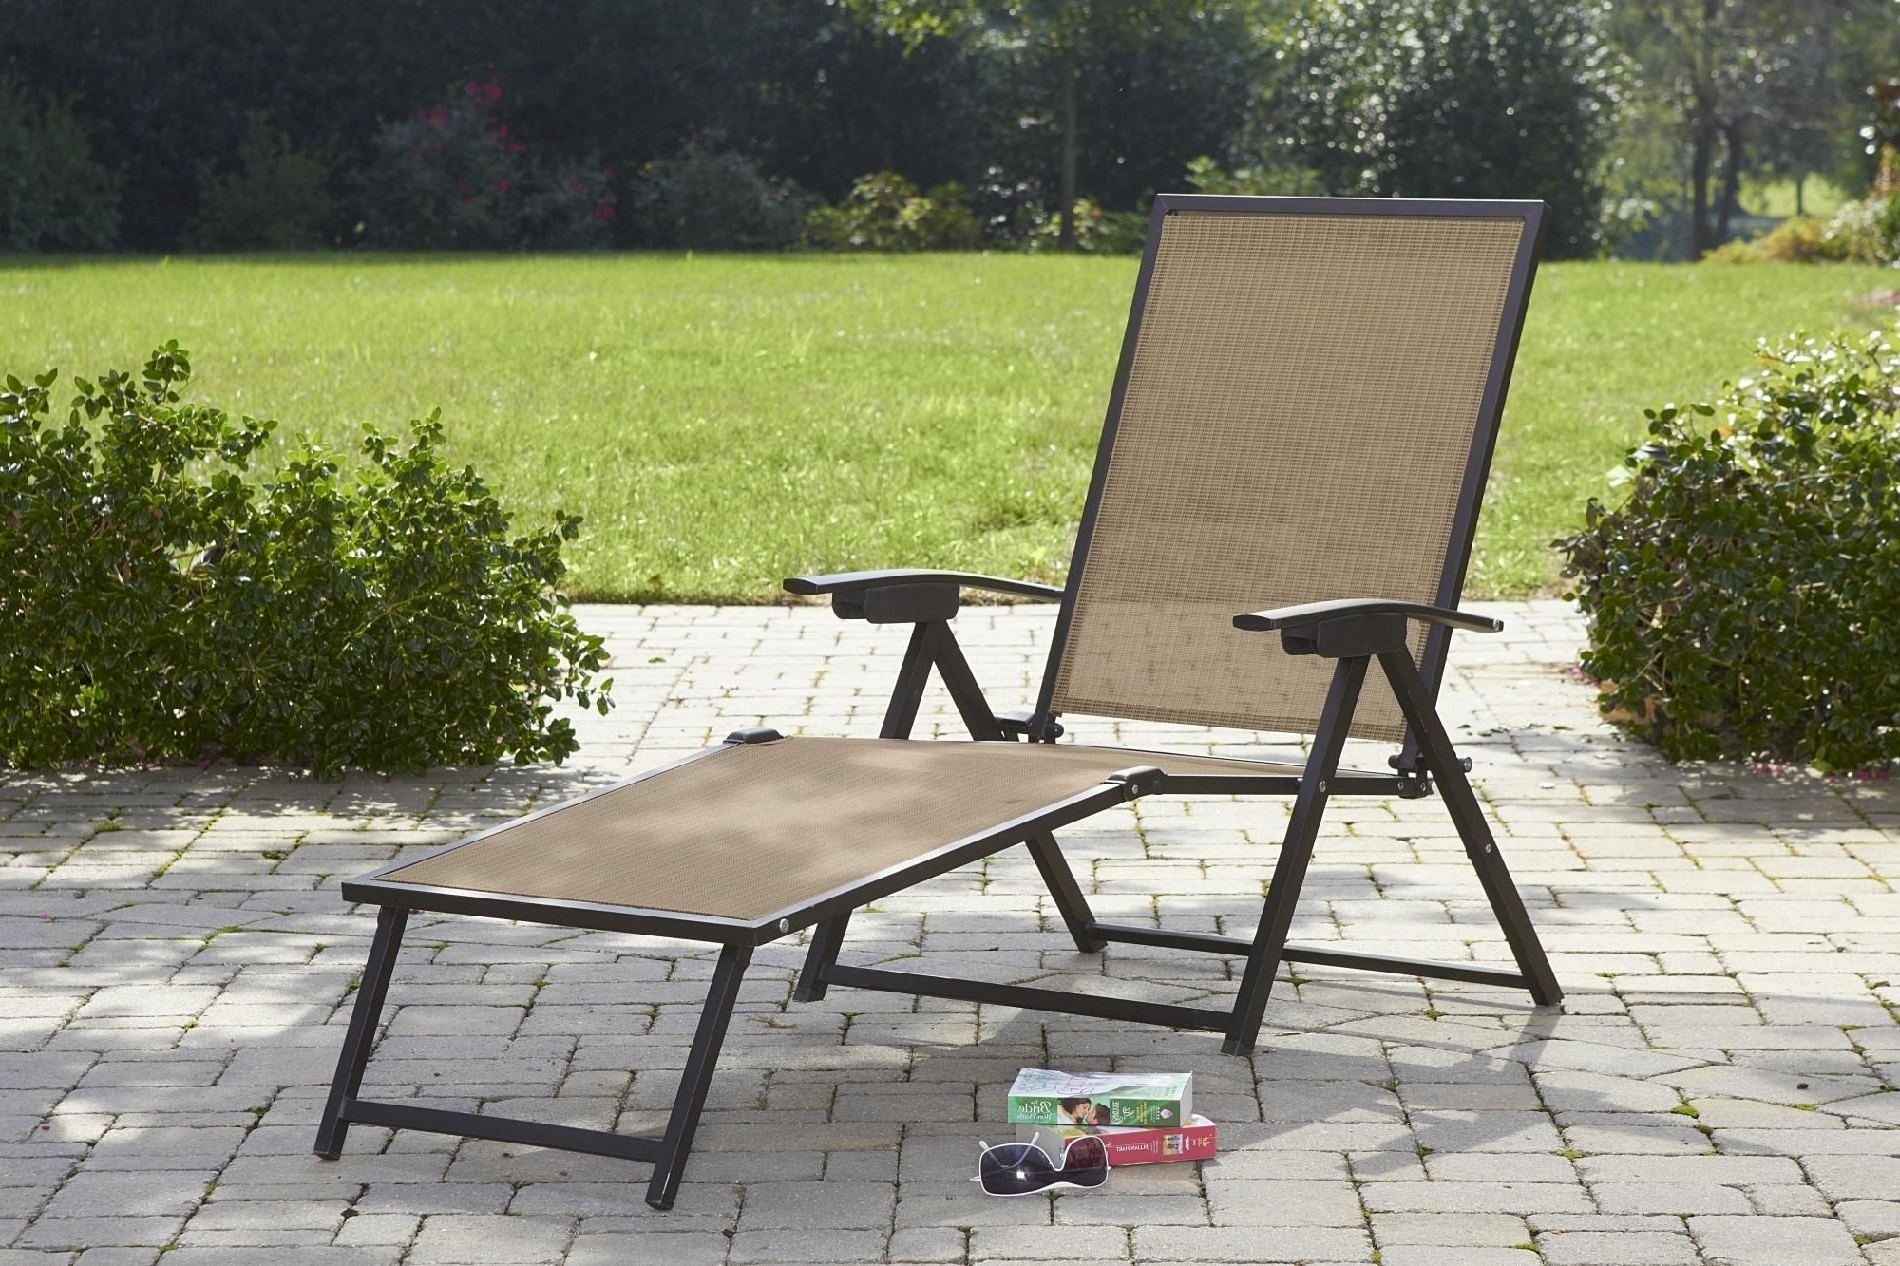 Trendy Chaise Lounge Folding Chairs Intended For Beautiful Folding Chaise Lounge Chair • The Ignite Show (View 12 of 15)